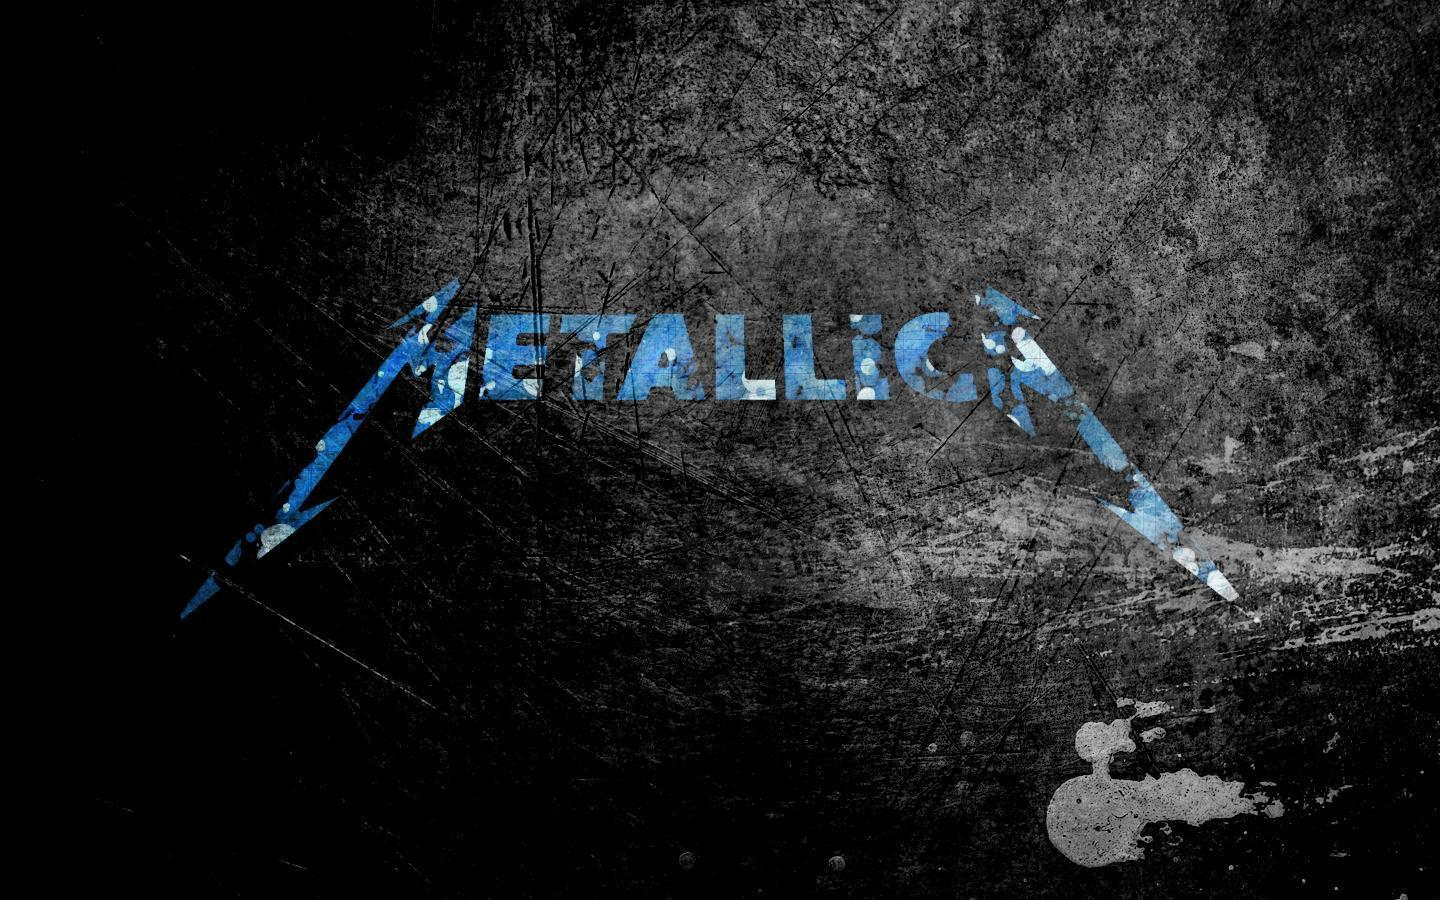 metallica lighting logo wallpaper - photo #35